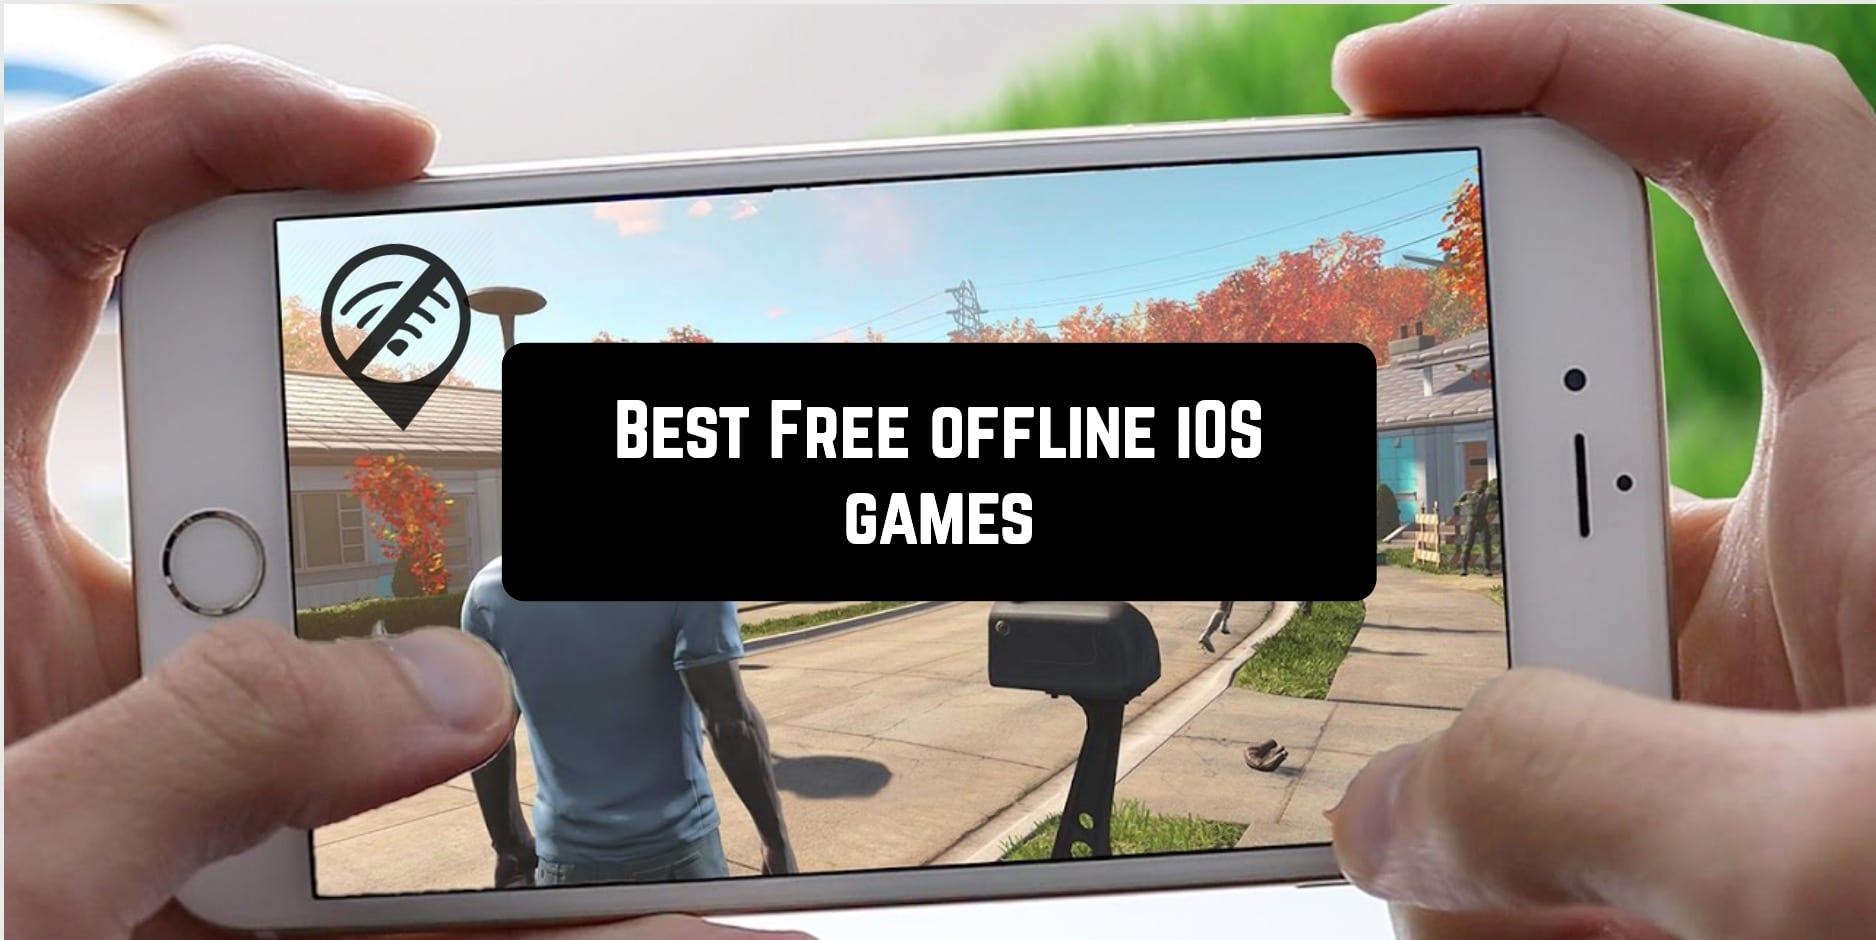 Best Free offline iOS games